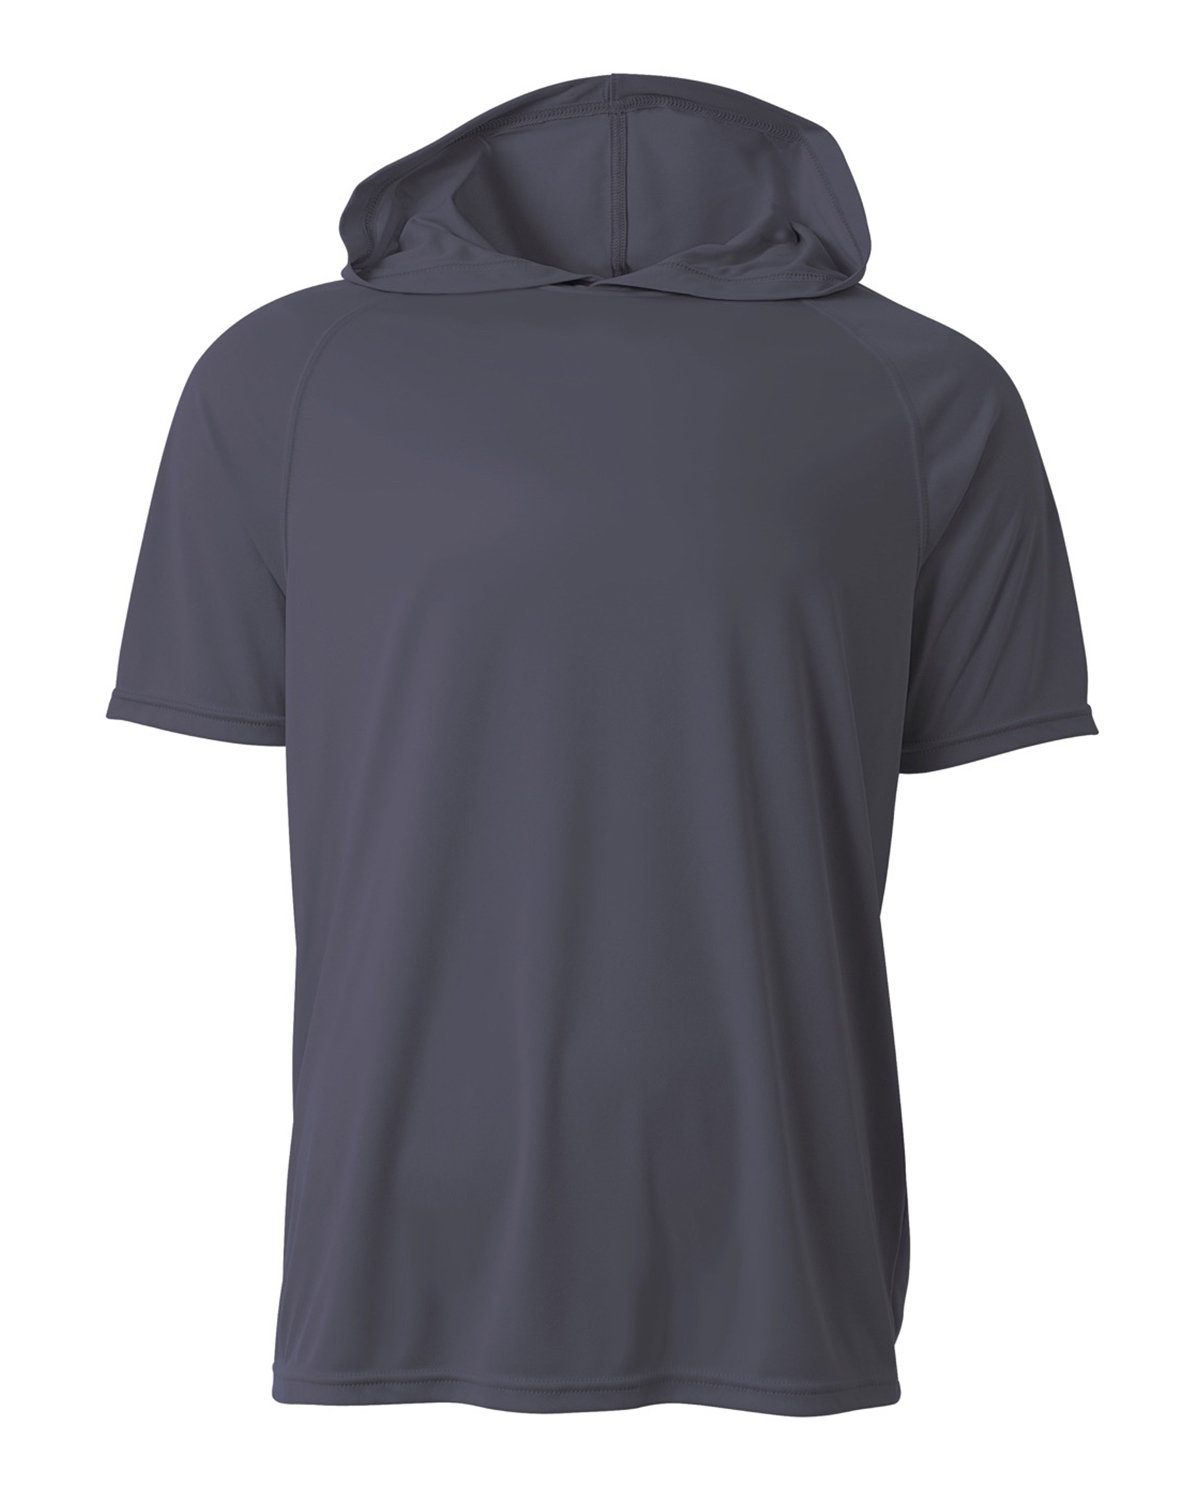 A4 Men's Cooling Performance Hooded T-shirt GRAPHITE